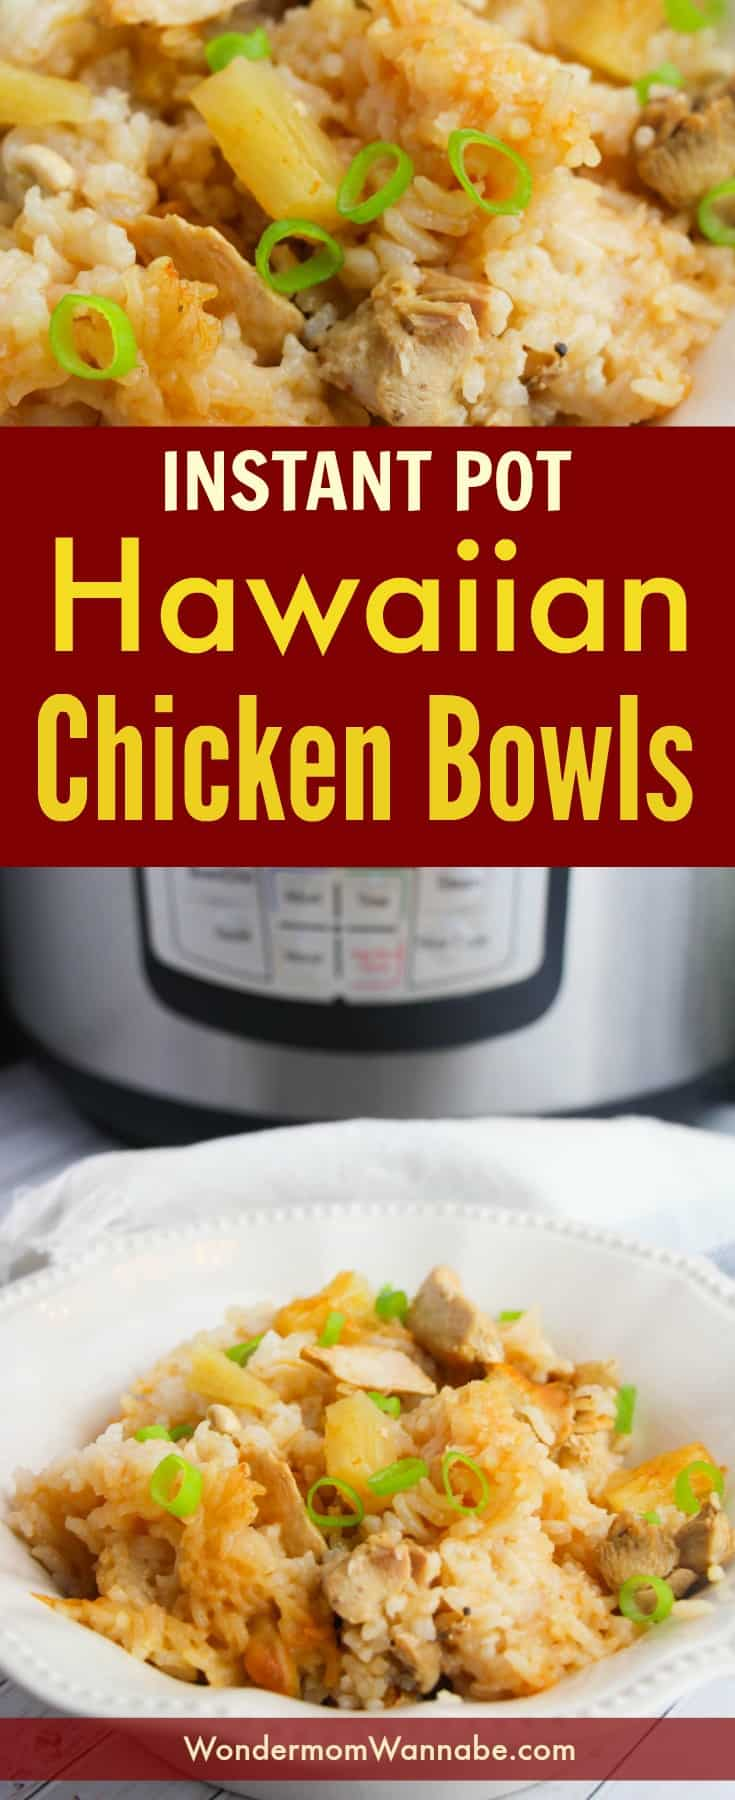 These Instant Pot Hawaiian Chicken Bowls are one of the most-requested dinners by my kids. They're so easy to make too! #instantpot #pressurecooker